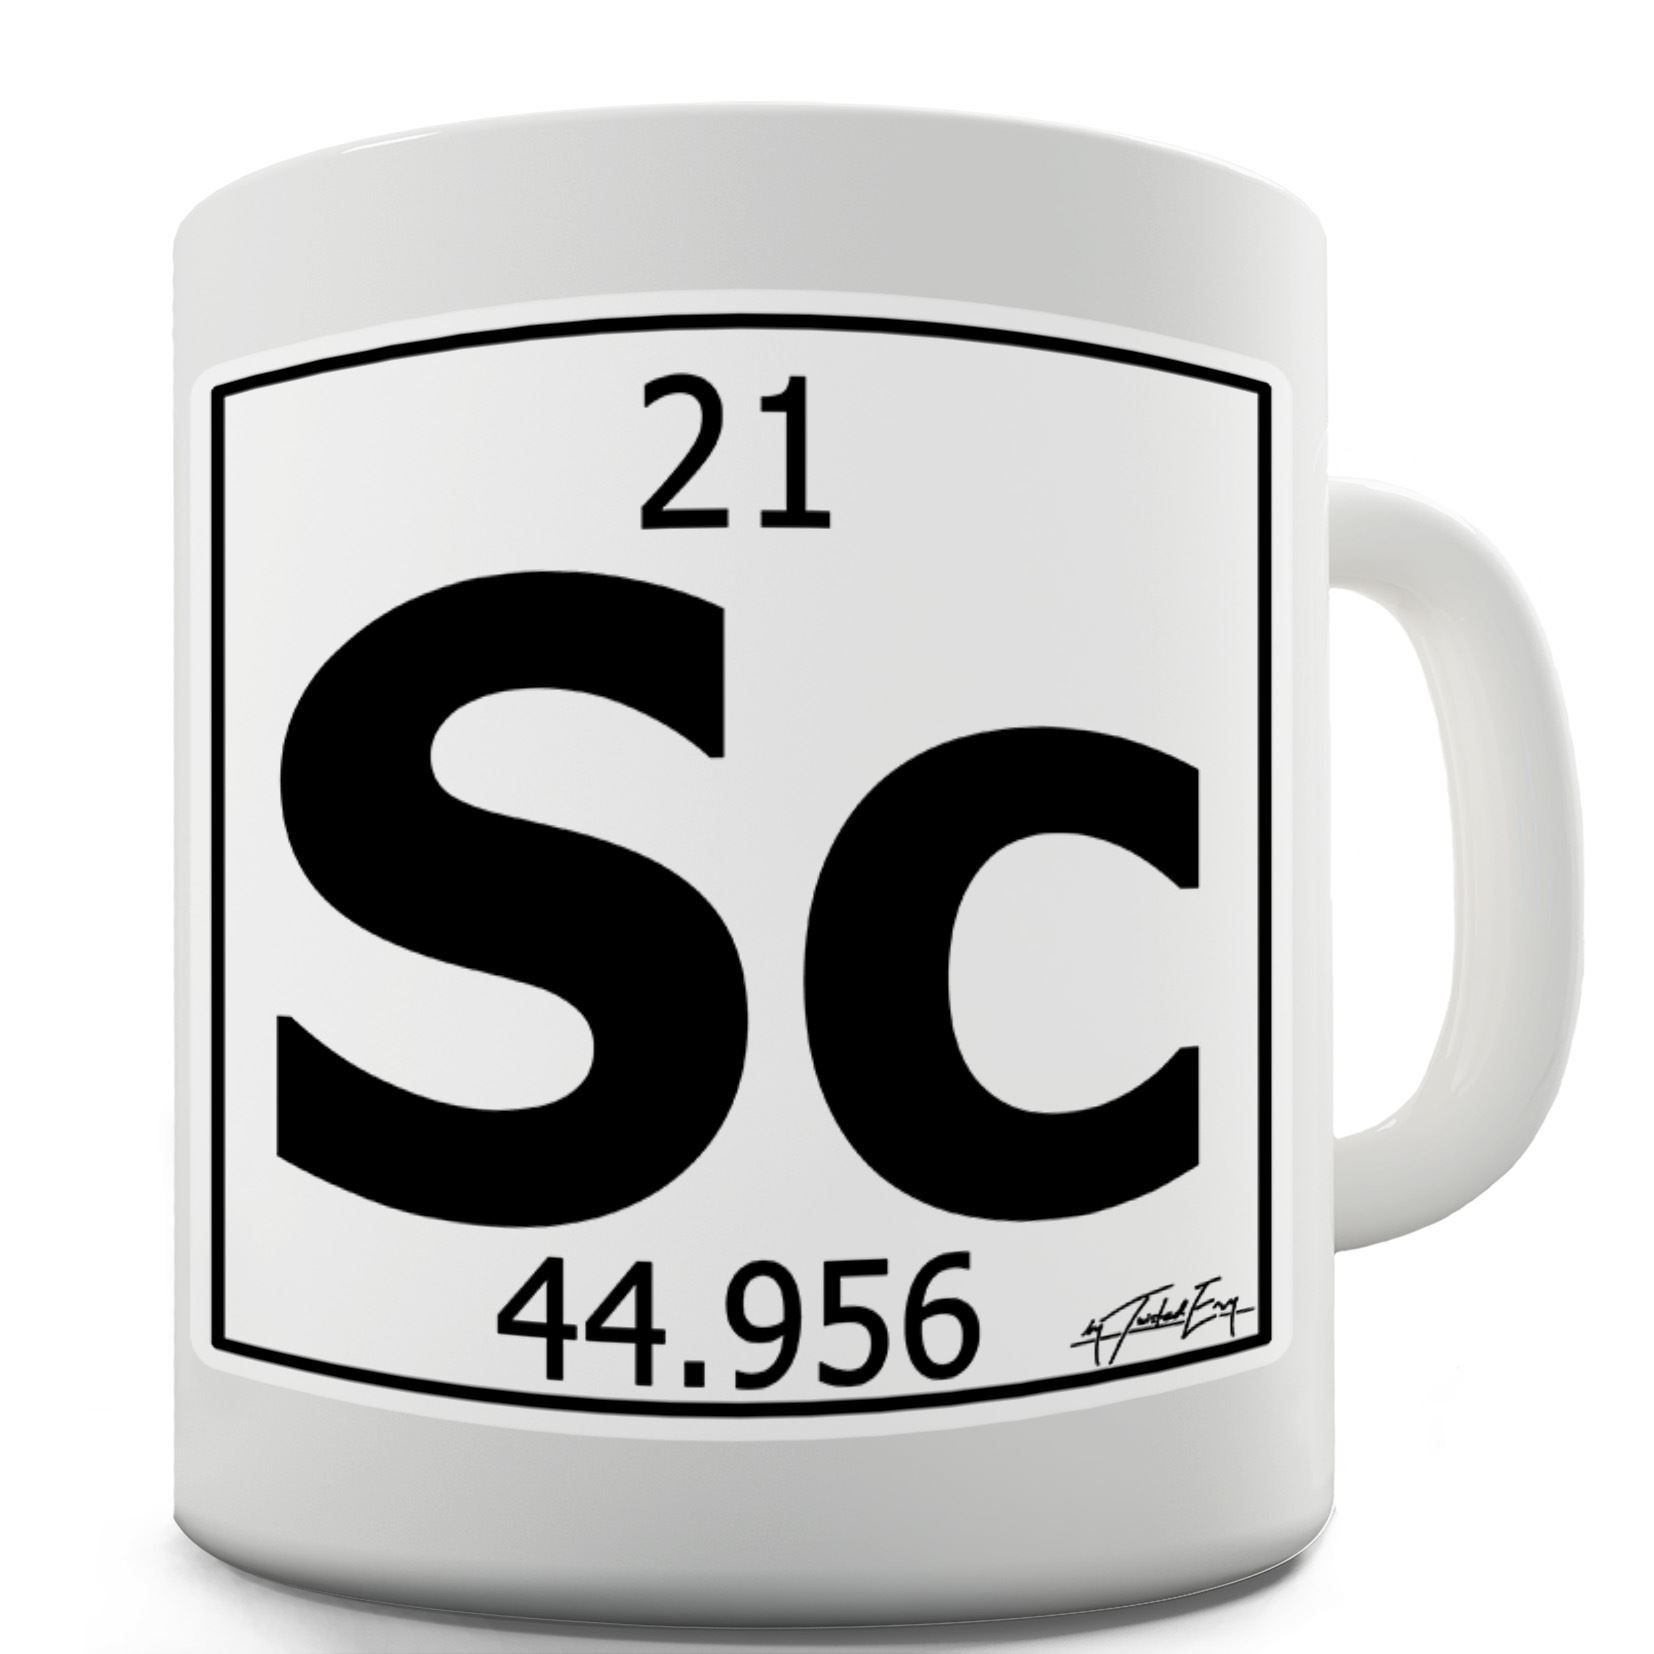 Twisted envy periodic table of elements sc scandium ceramic periodic table of elements sc scandium print a seriously cheeky mug that will definitely stand out funny gift idea a totally unique and hilarious mug that gamestrikefo Images